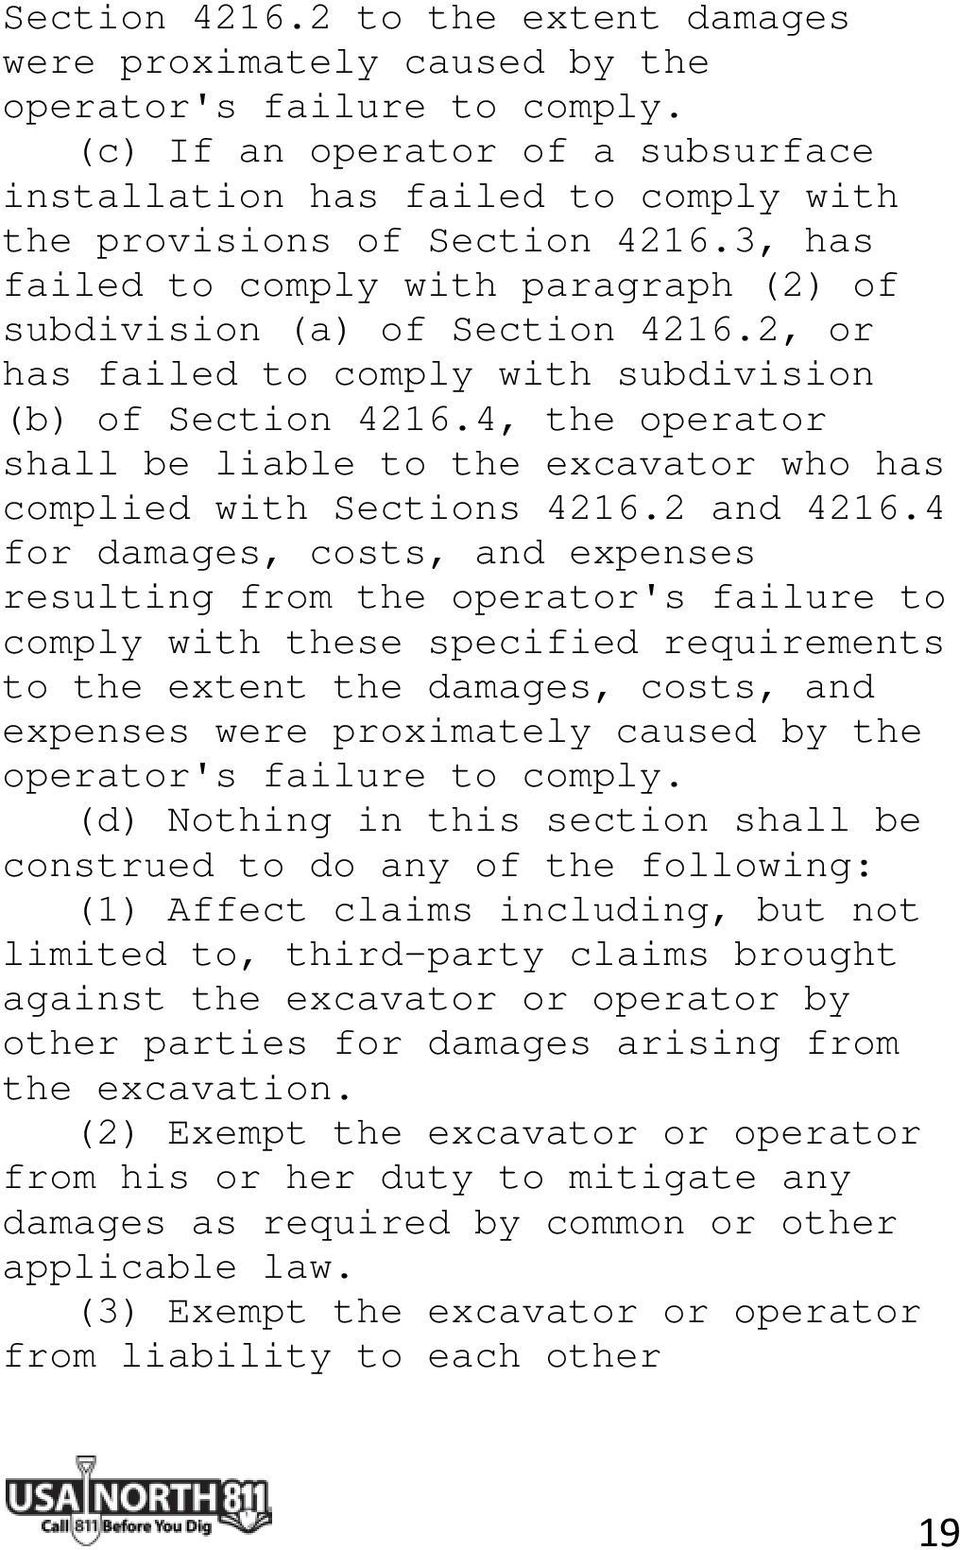 2, or has failed to comply with subdivision (b) of Section 4216.4, the operator shall be liable to the excavator who has complied with Sections 4216.2 and 4216.